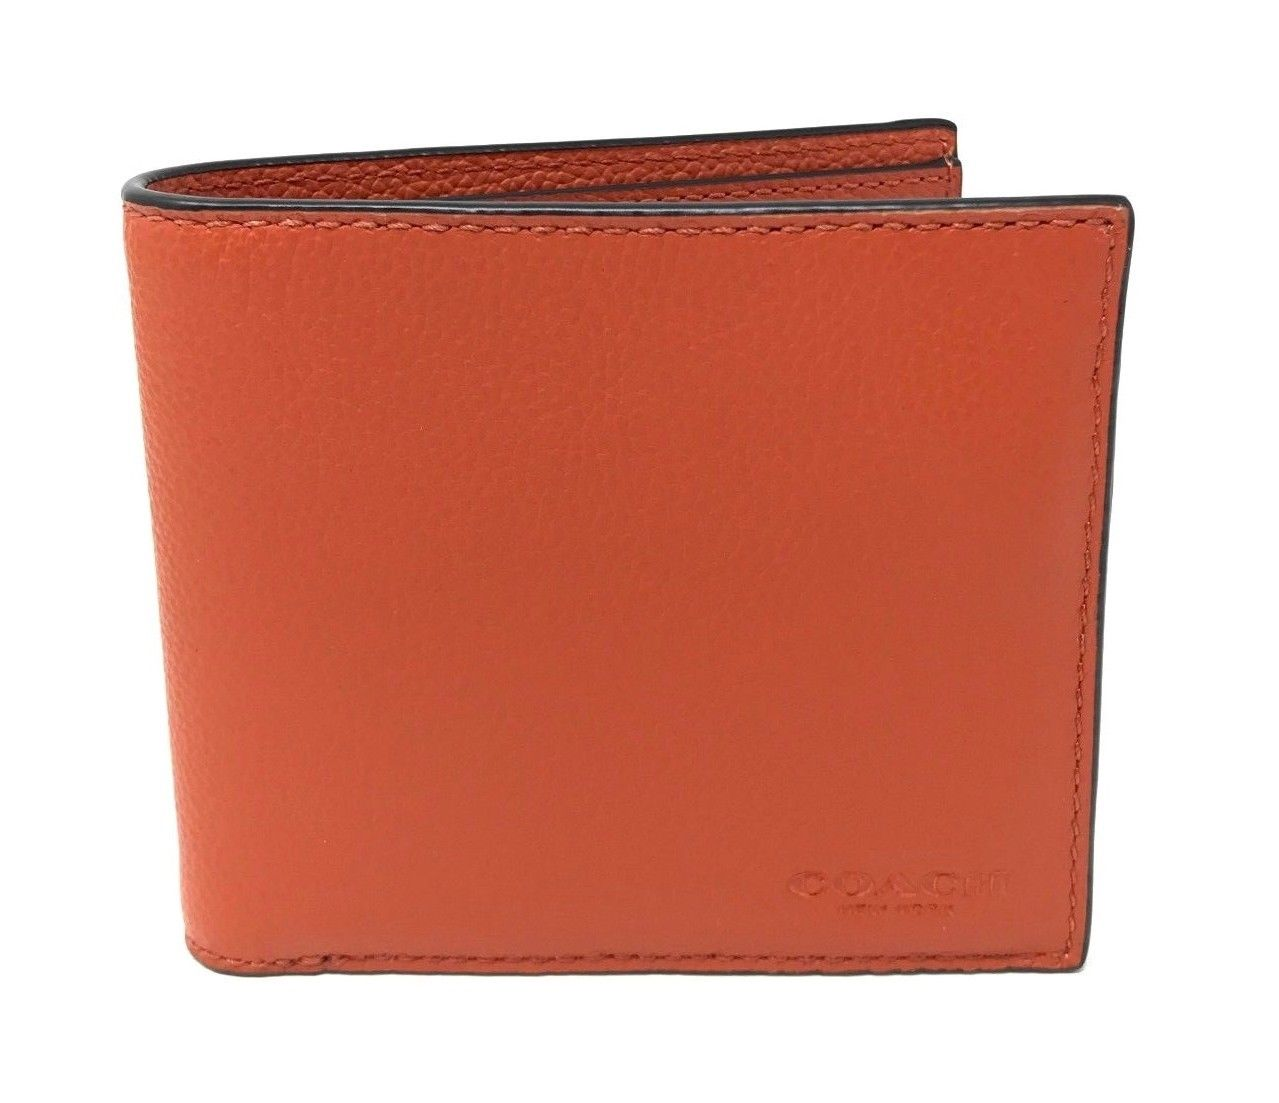 Coach Men's Billfold Double Fold Sport Calf Leather Russet Wallet F75084 $150